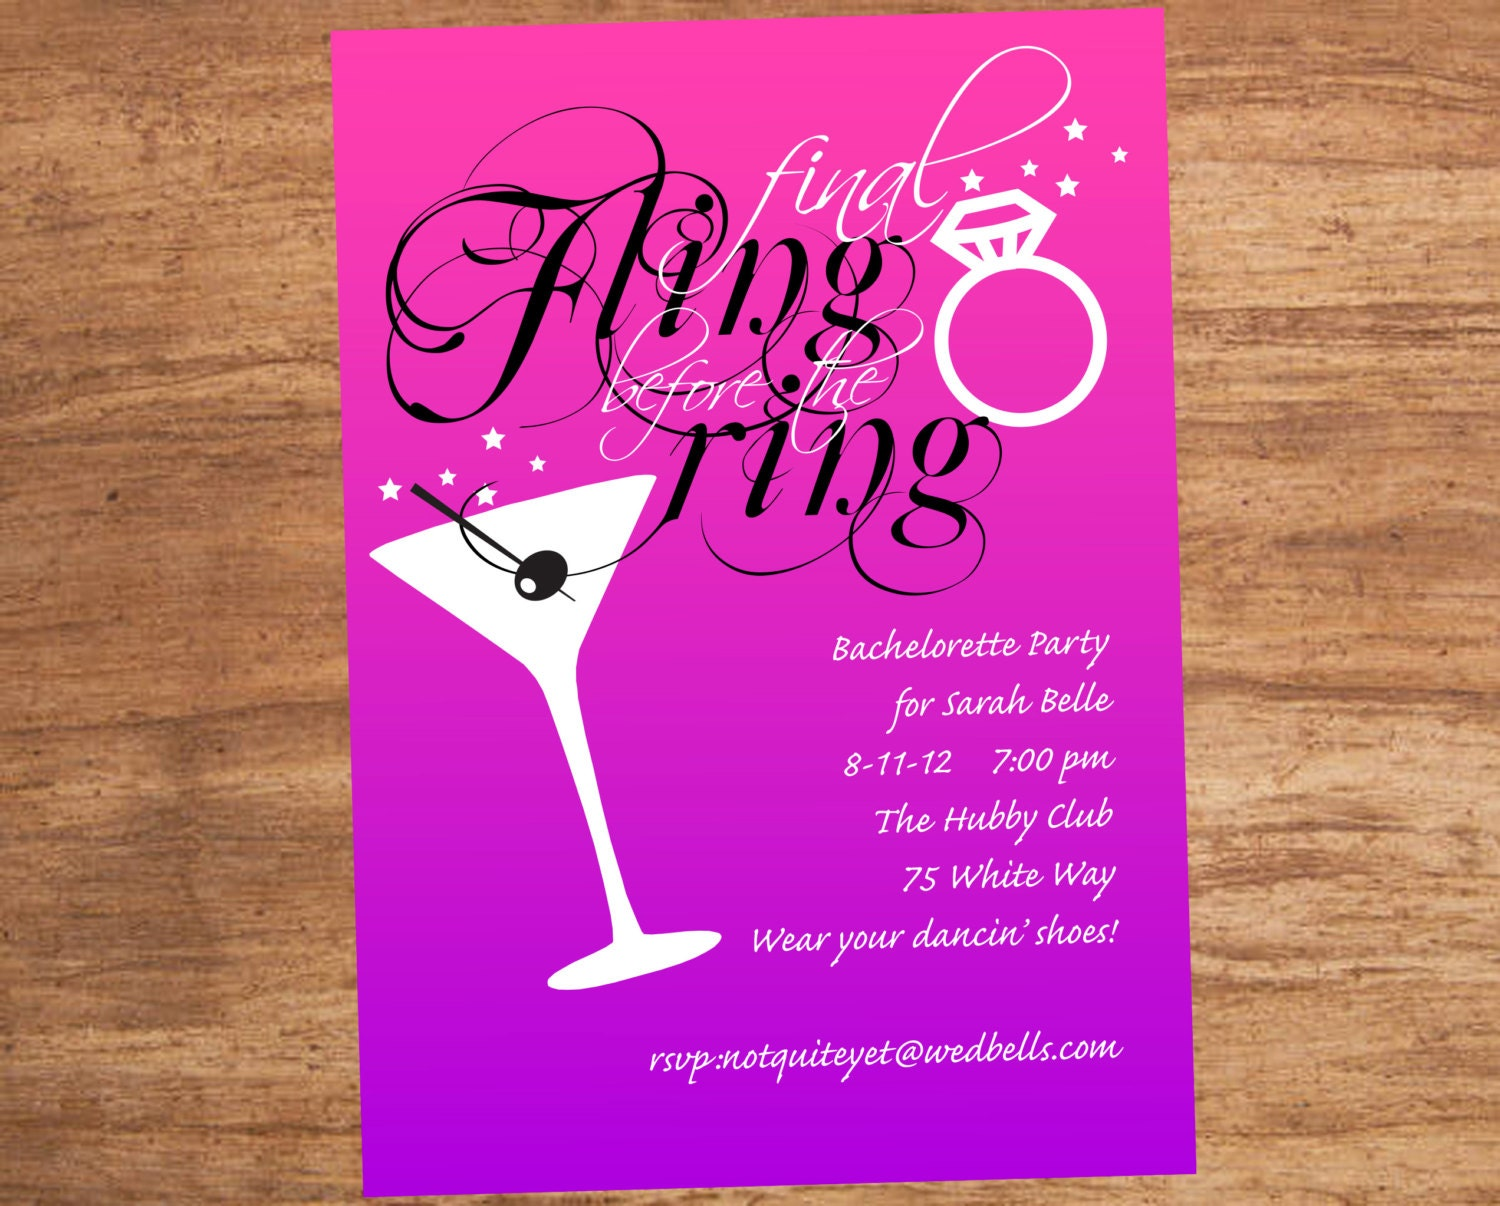 Final Fling Before The Ring Bachelorette Party Custom